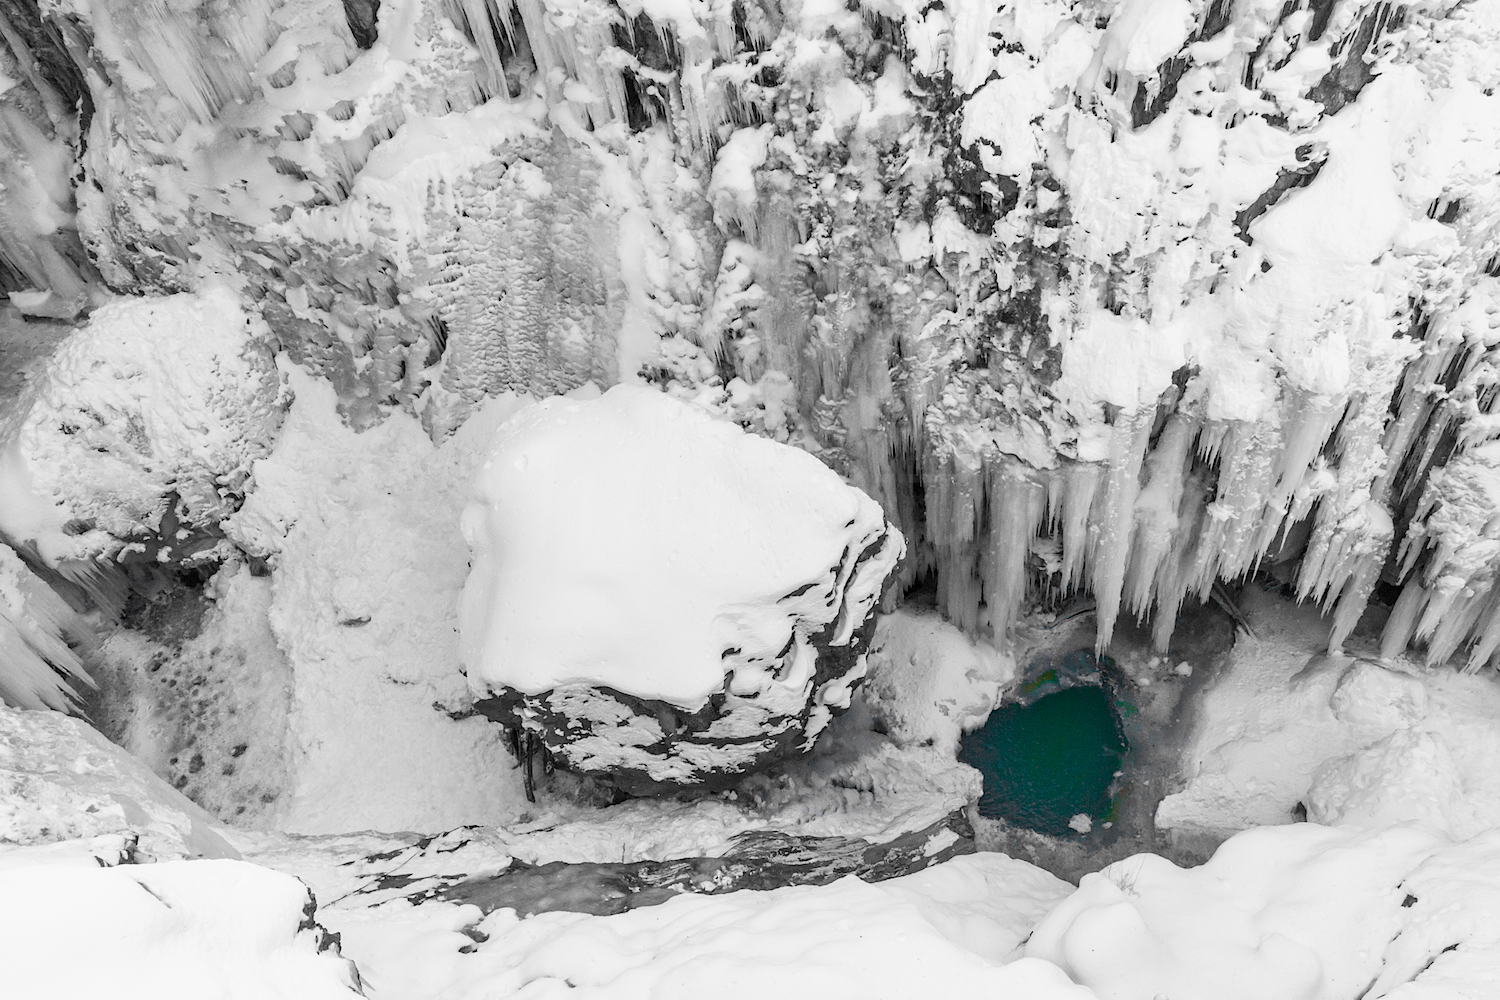 Ouray Ice Park, Image # 4414